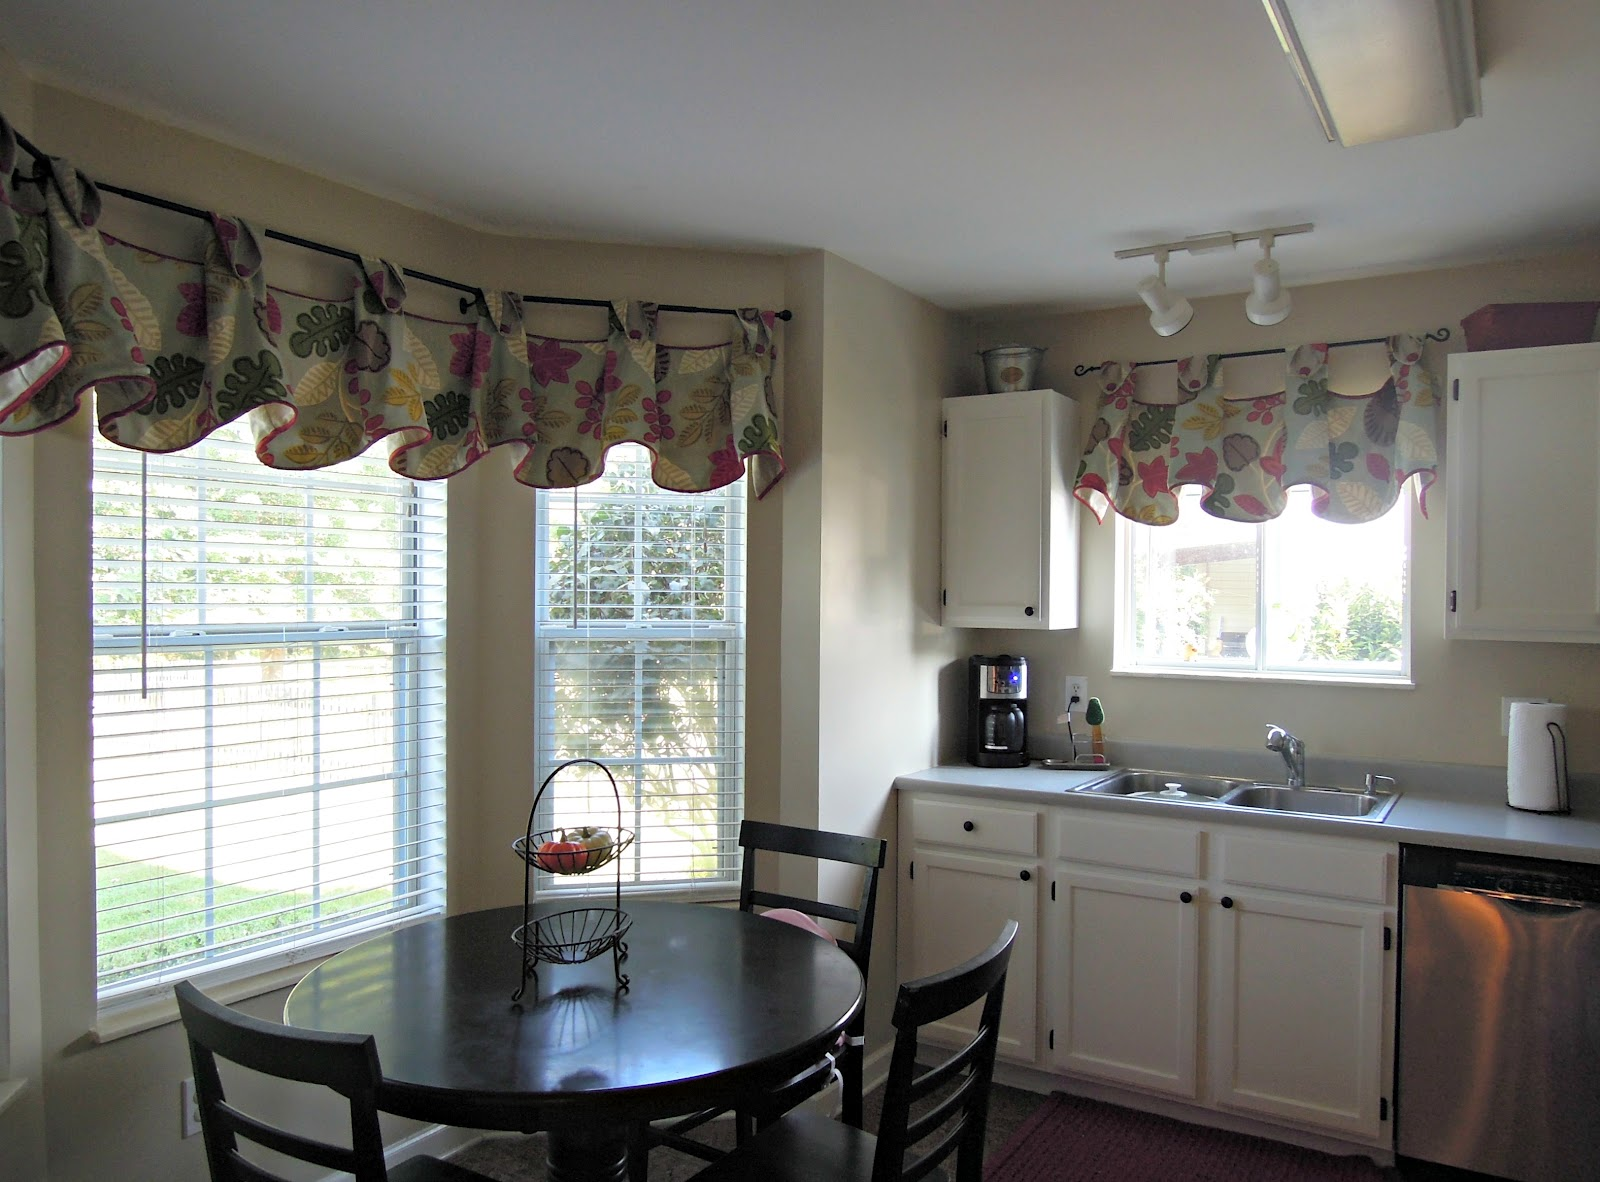 Pate meadows kitchen valance julia style creatively for Contemporary kitchen window treatment ideas